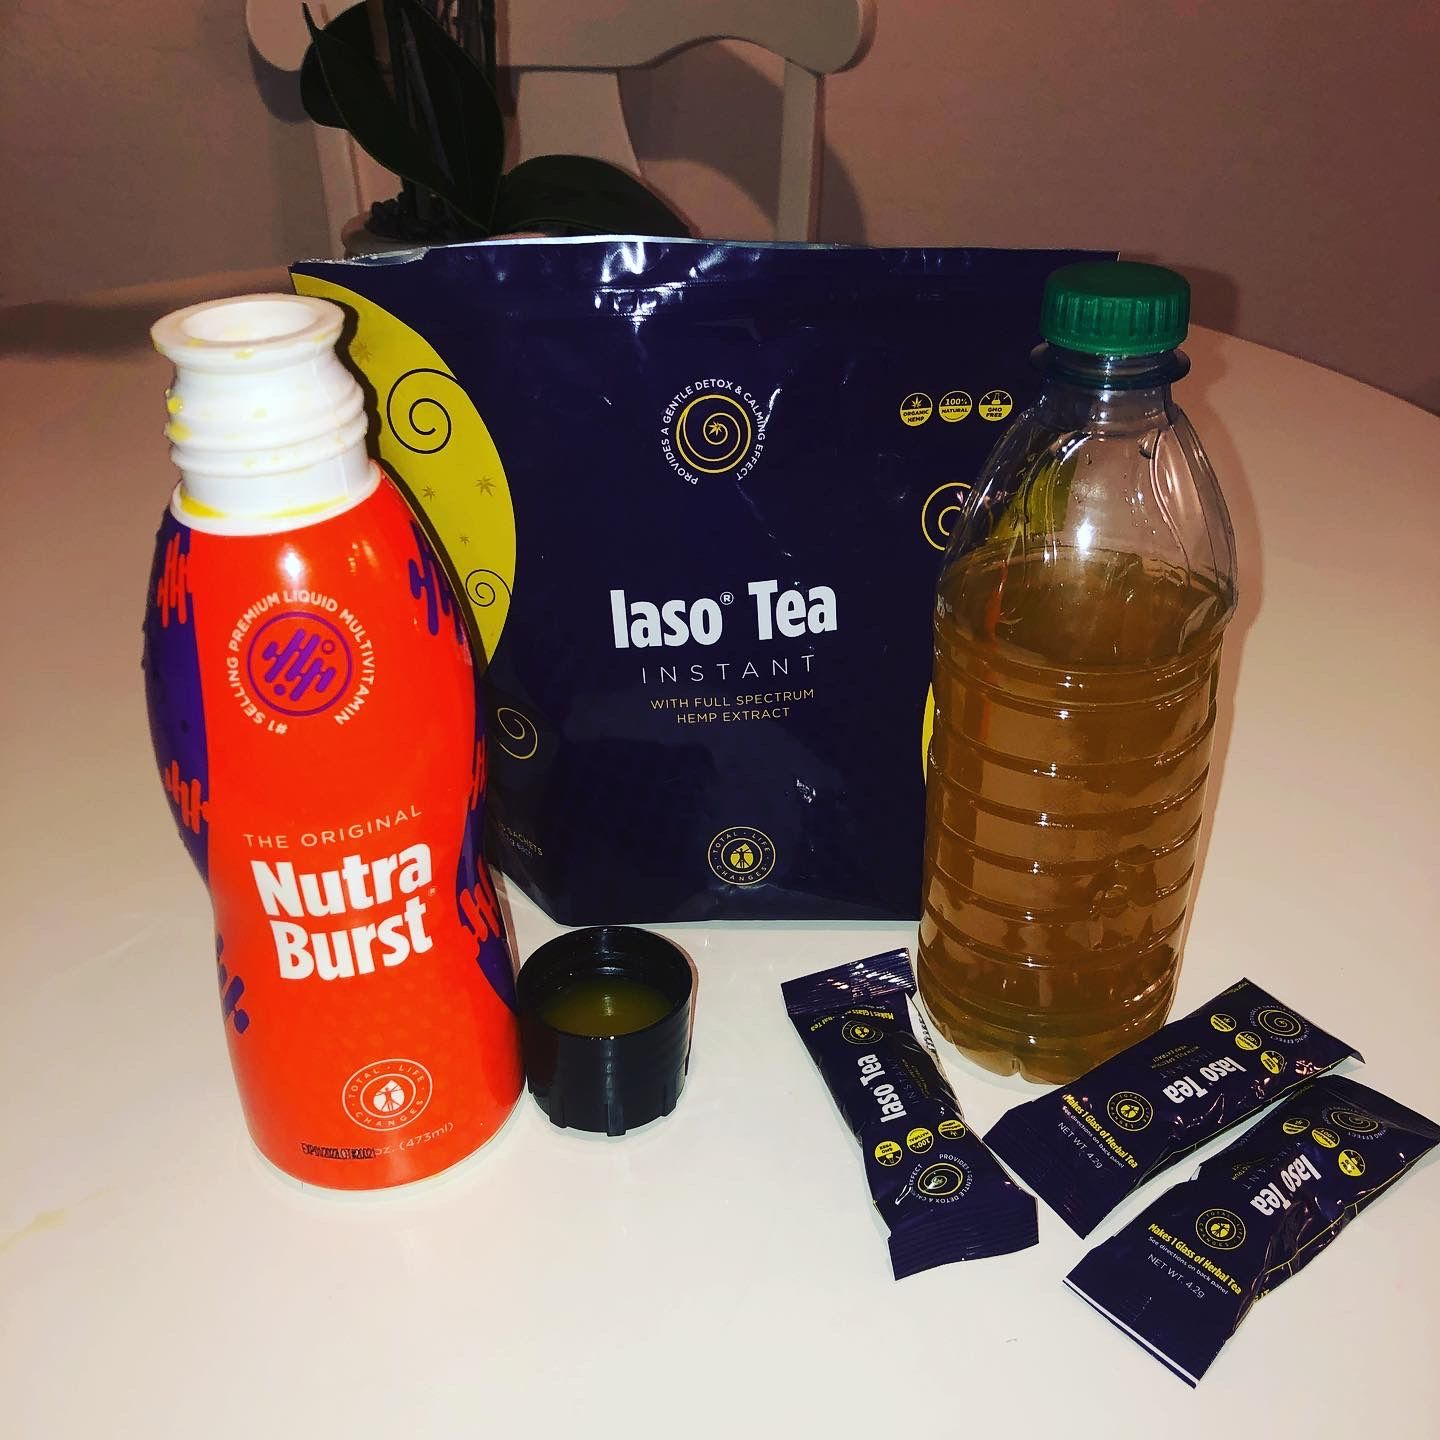 Iaso Tea Will Detox Your System Nutraburst Will Replenish Your Body With The Nutrients Needed Amazing Liquid Multiv In 2020 Total Life Changes Life Changes Iaso Tea